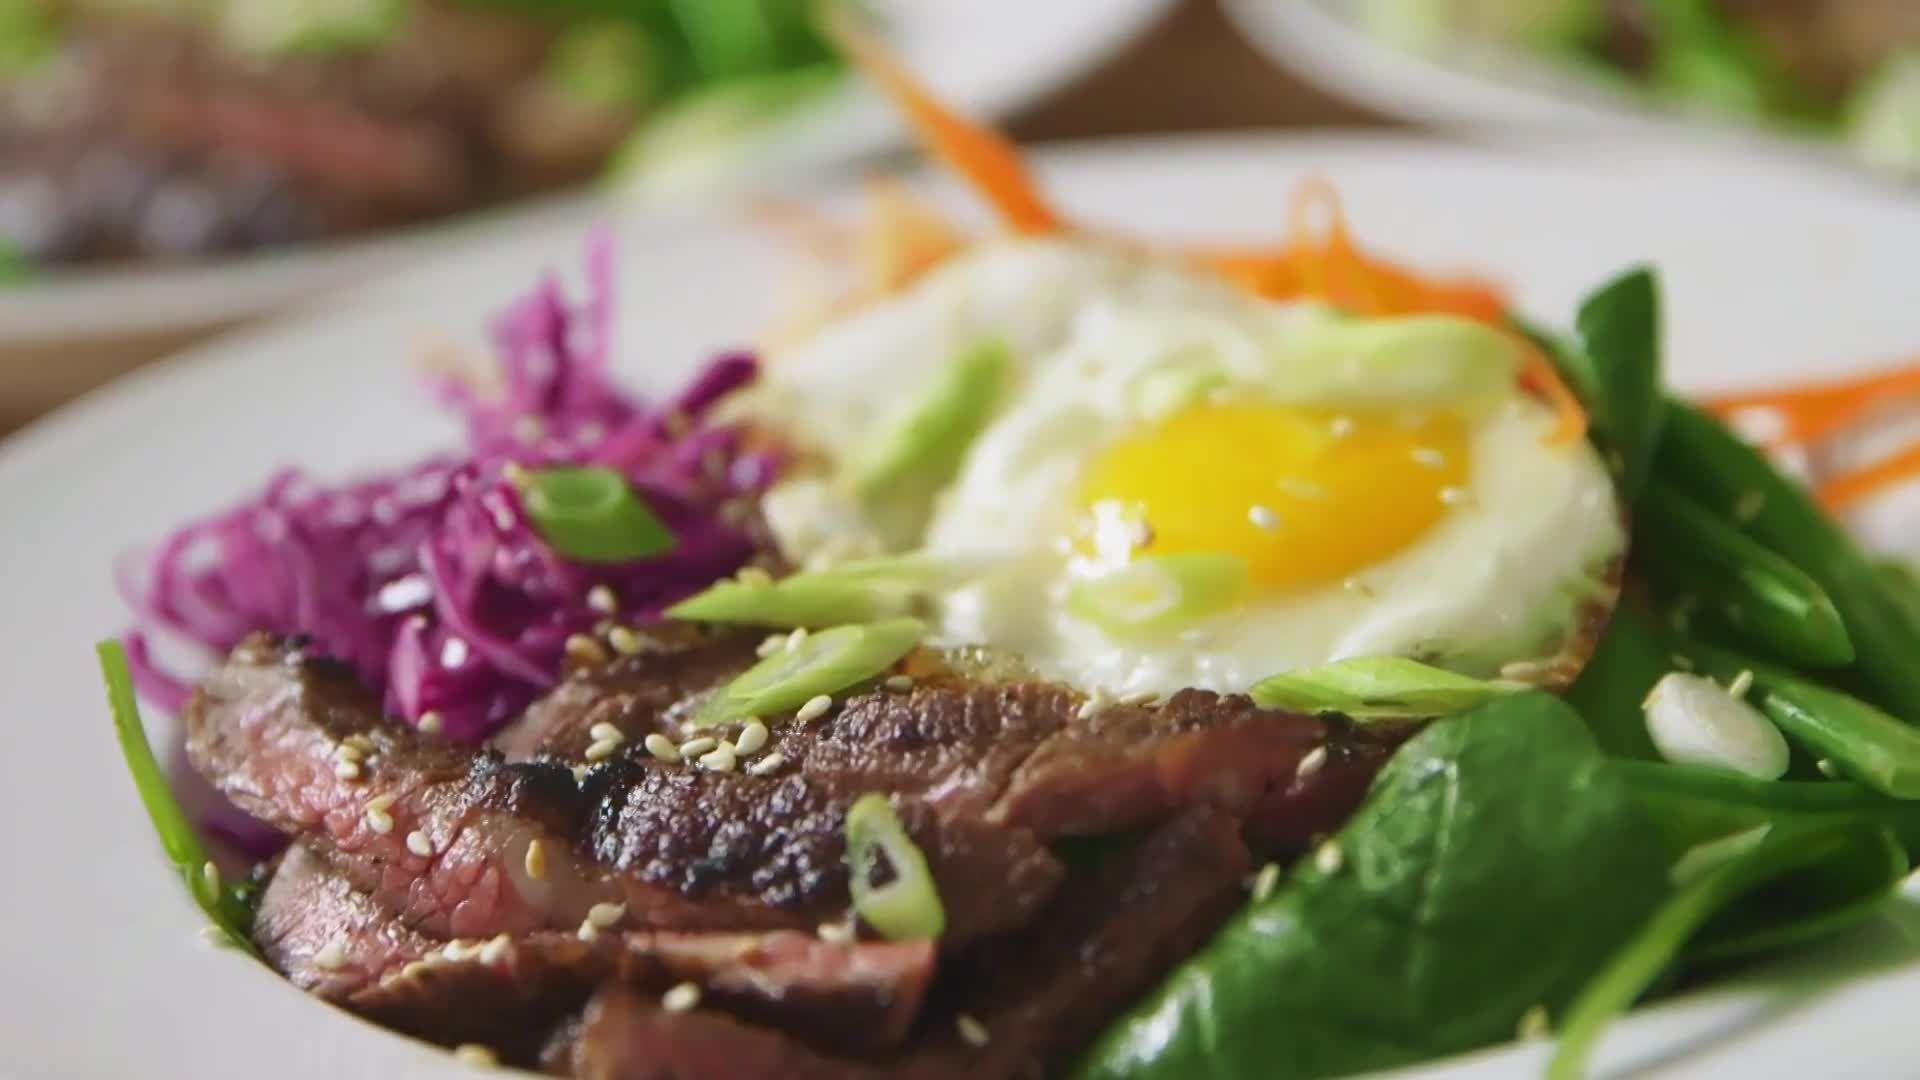 How to Make Korean-Style Steak Salad